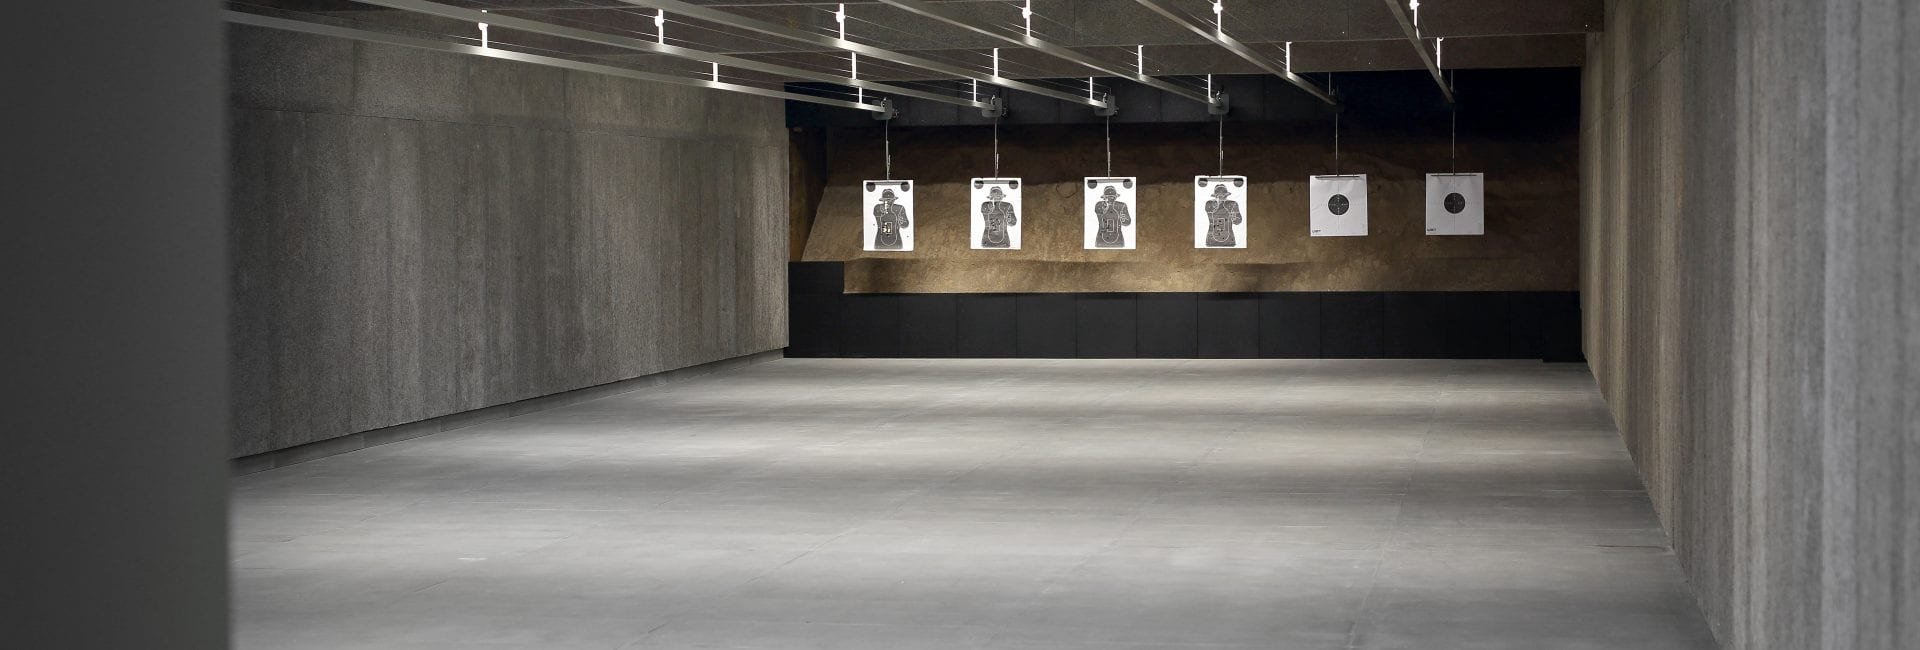 shooting packages c2 tactical